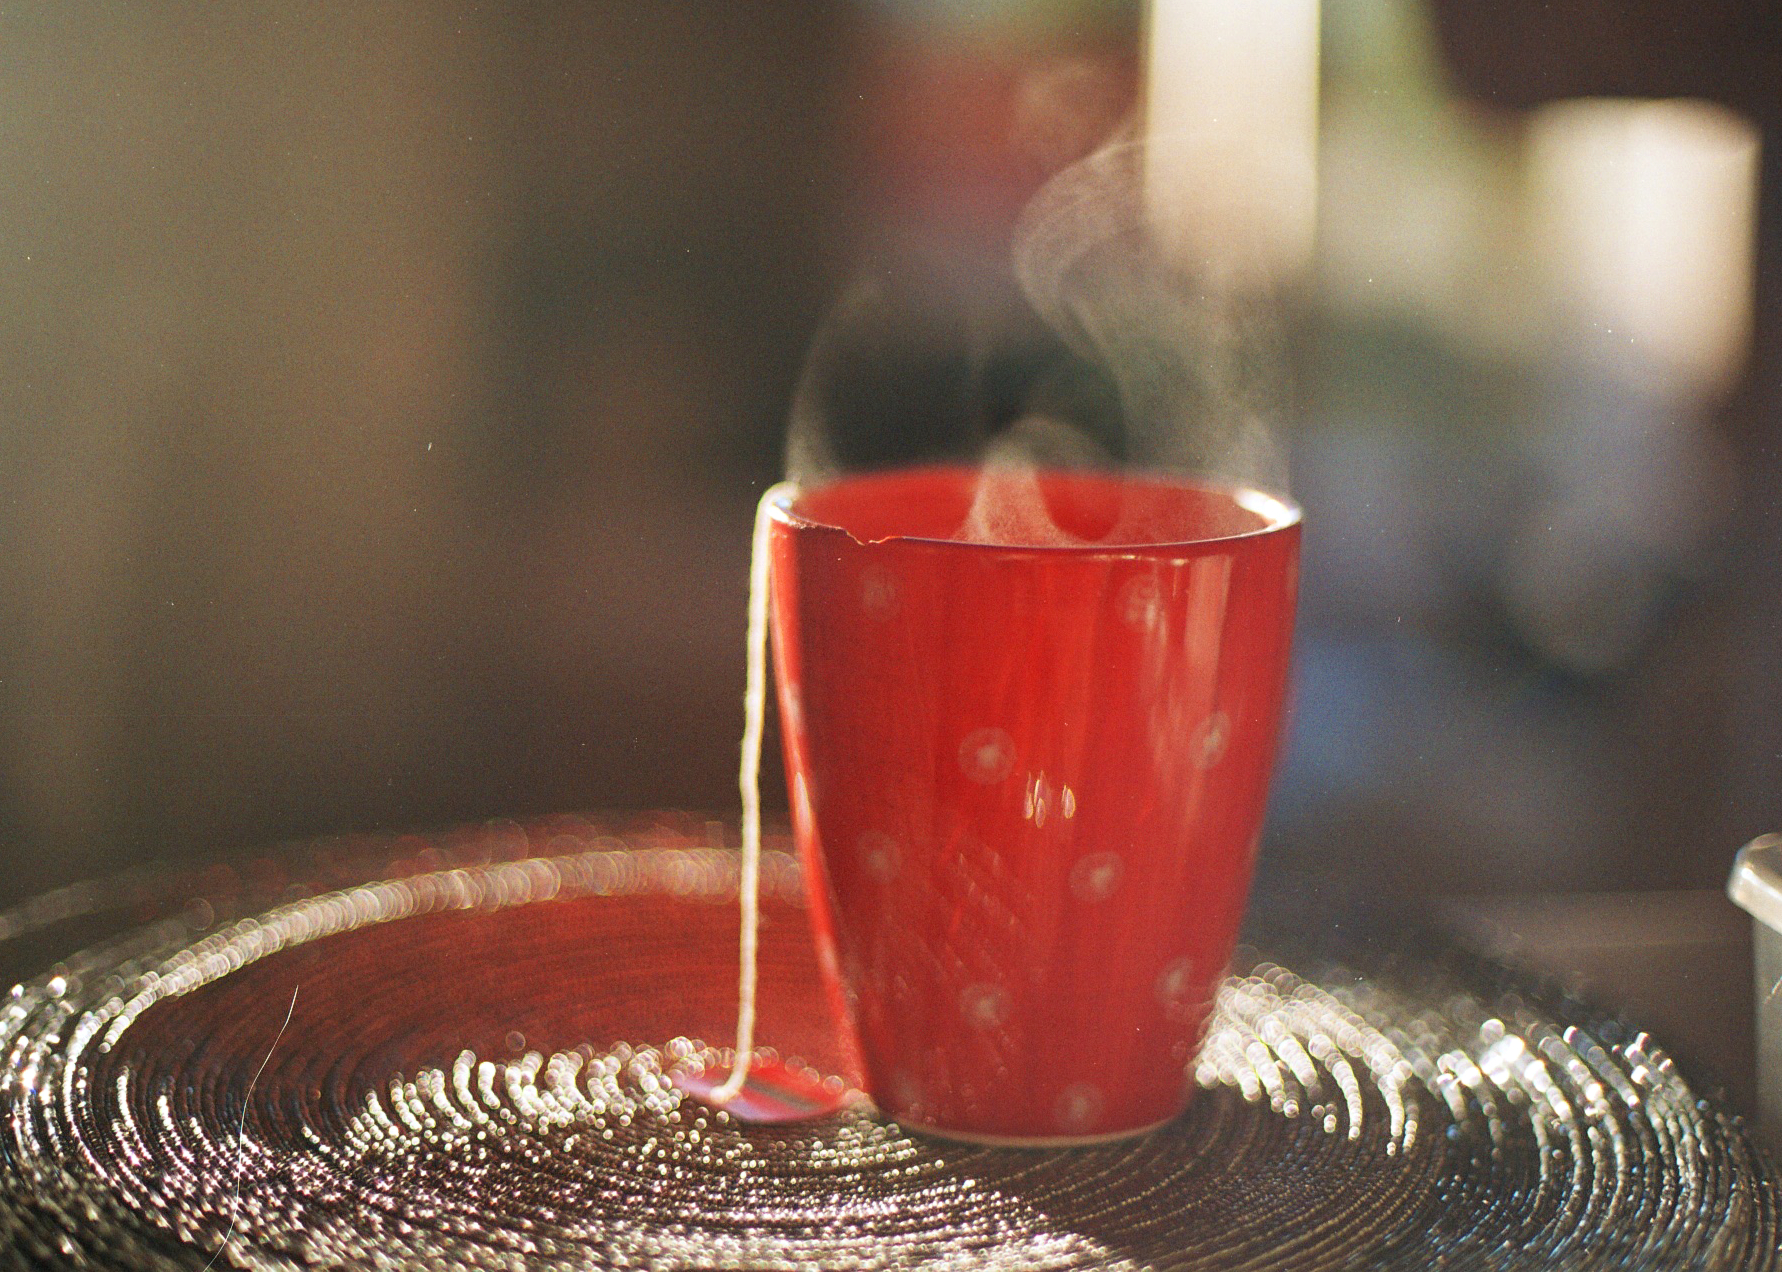 Steaming Cup of Tea by Olivia Bossert